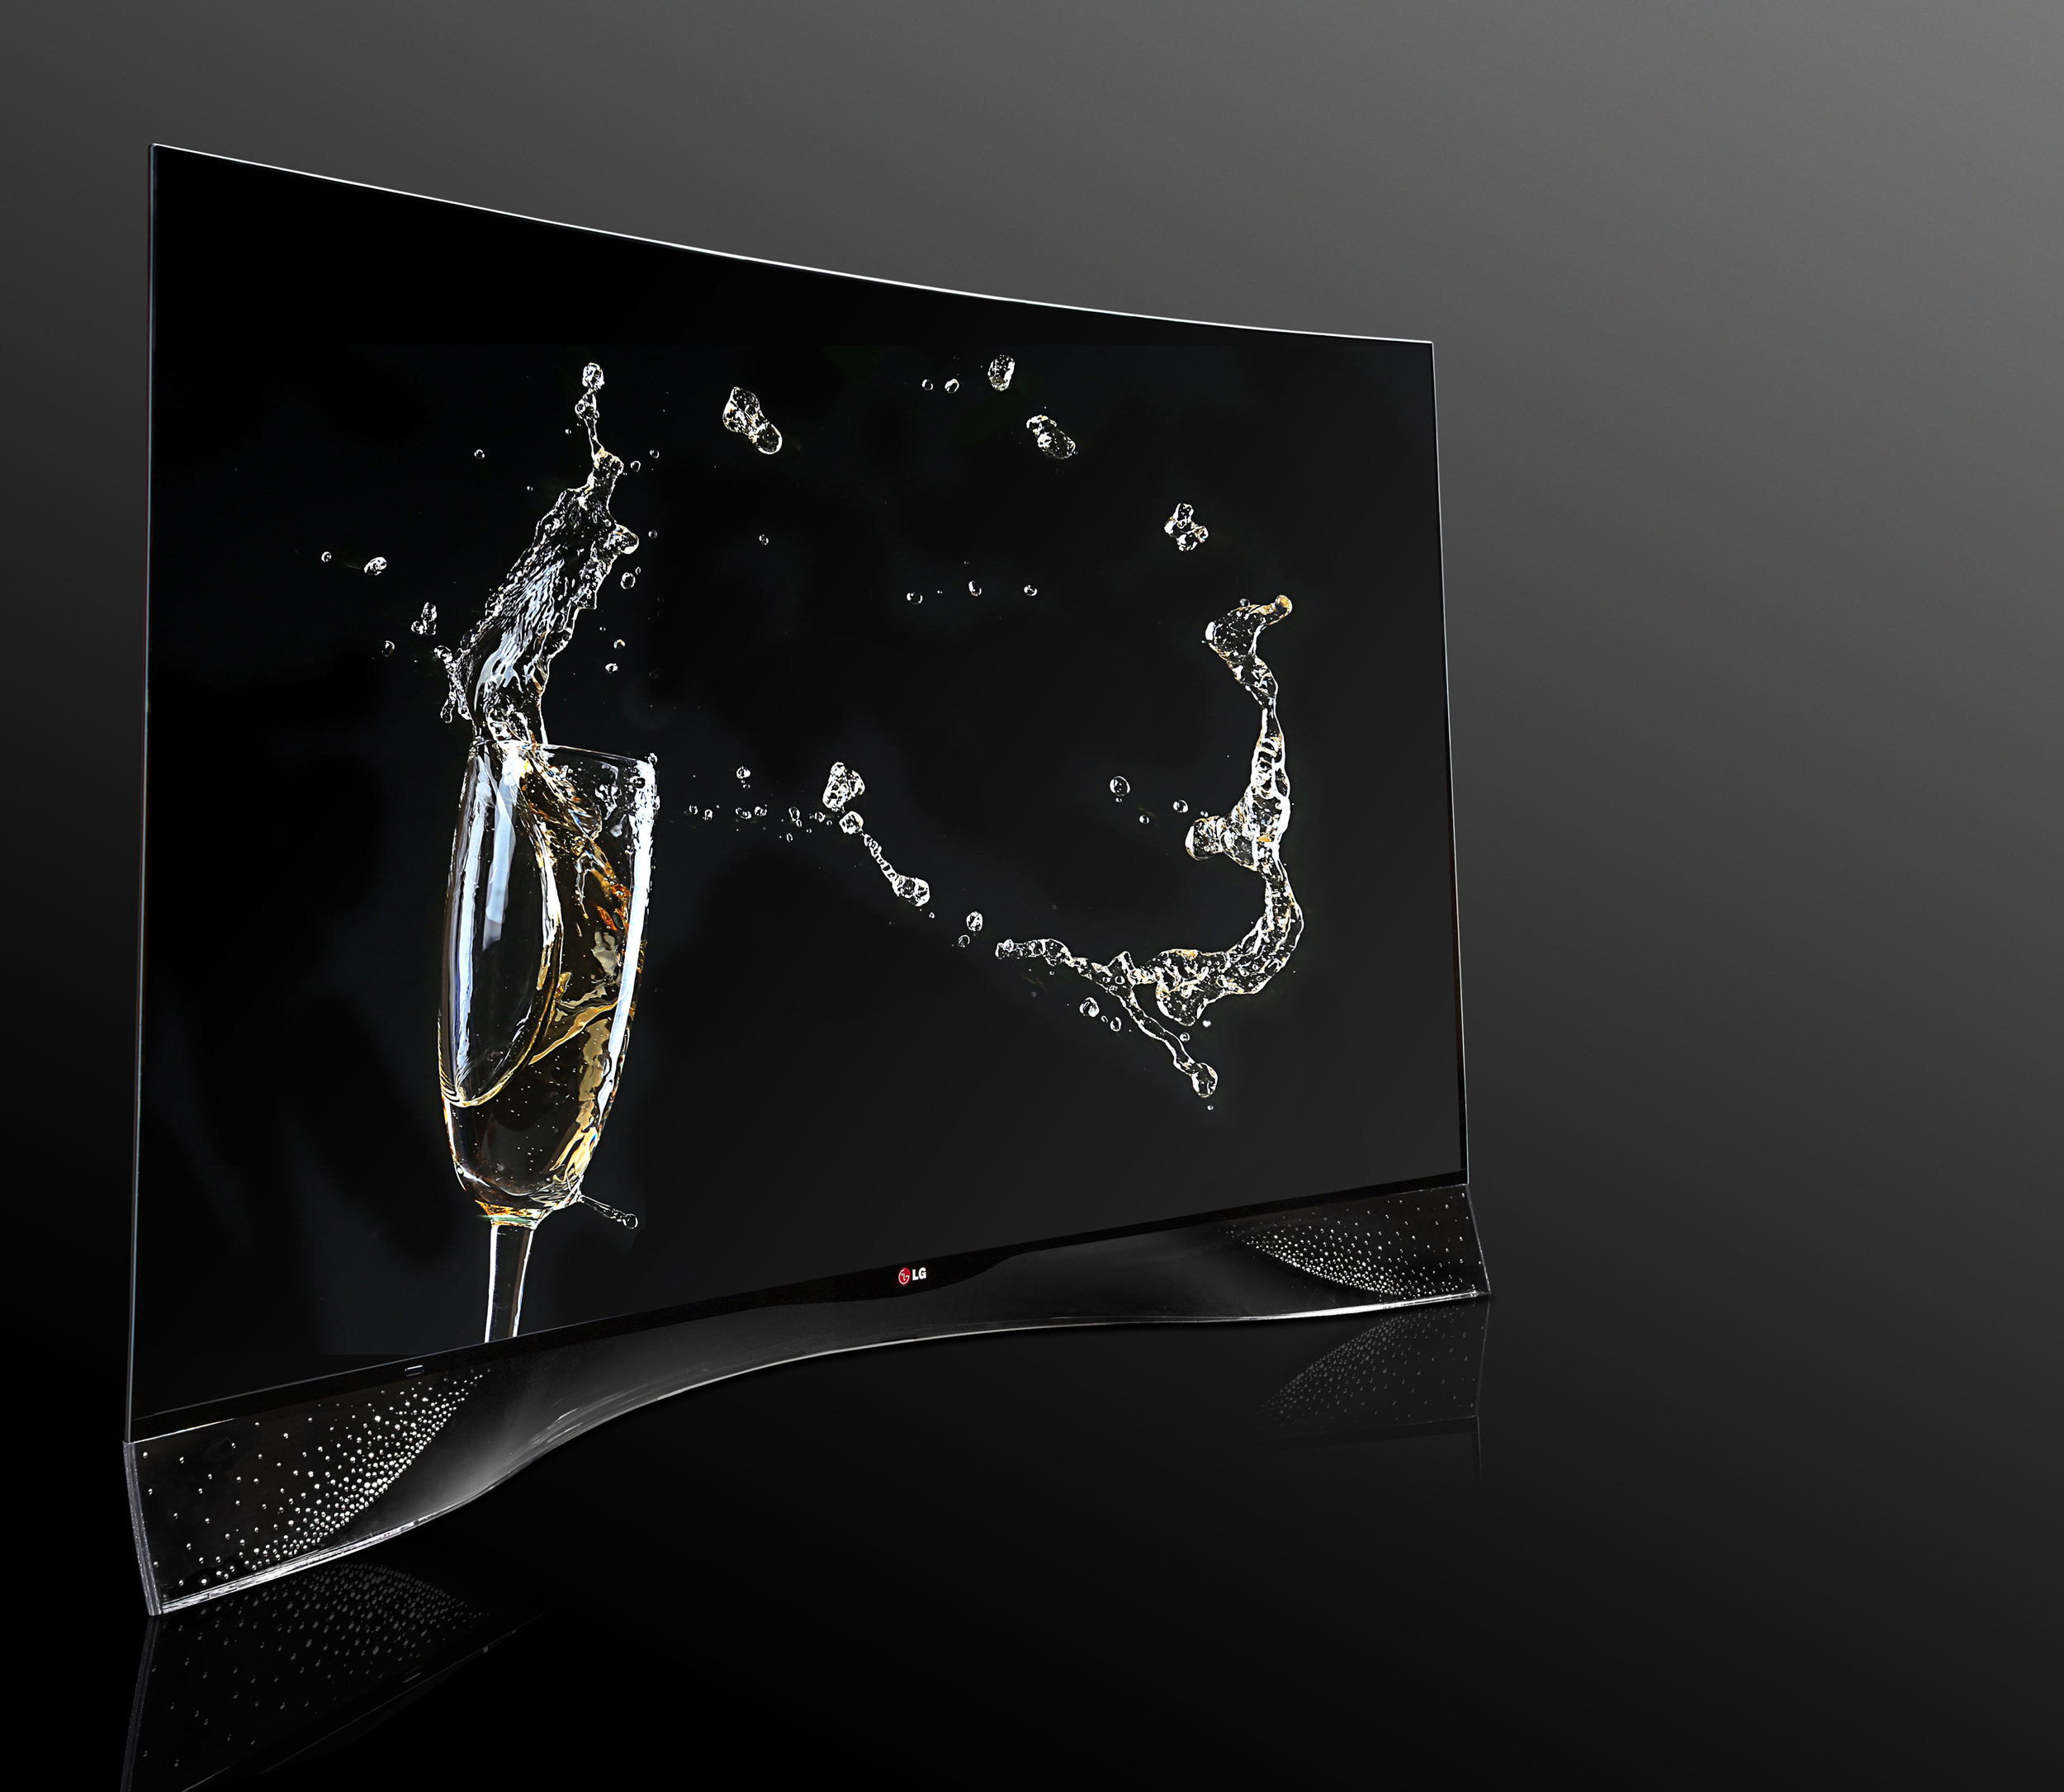 A left-side view of LG CURVED OLED TV displaying its pixel dimming technology featuring Swarovski Crystal Stand